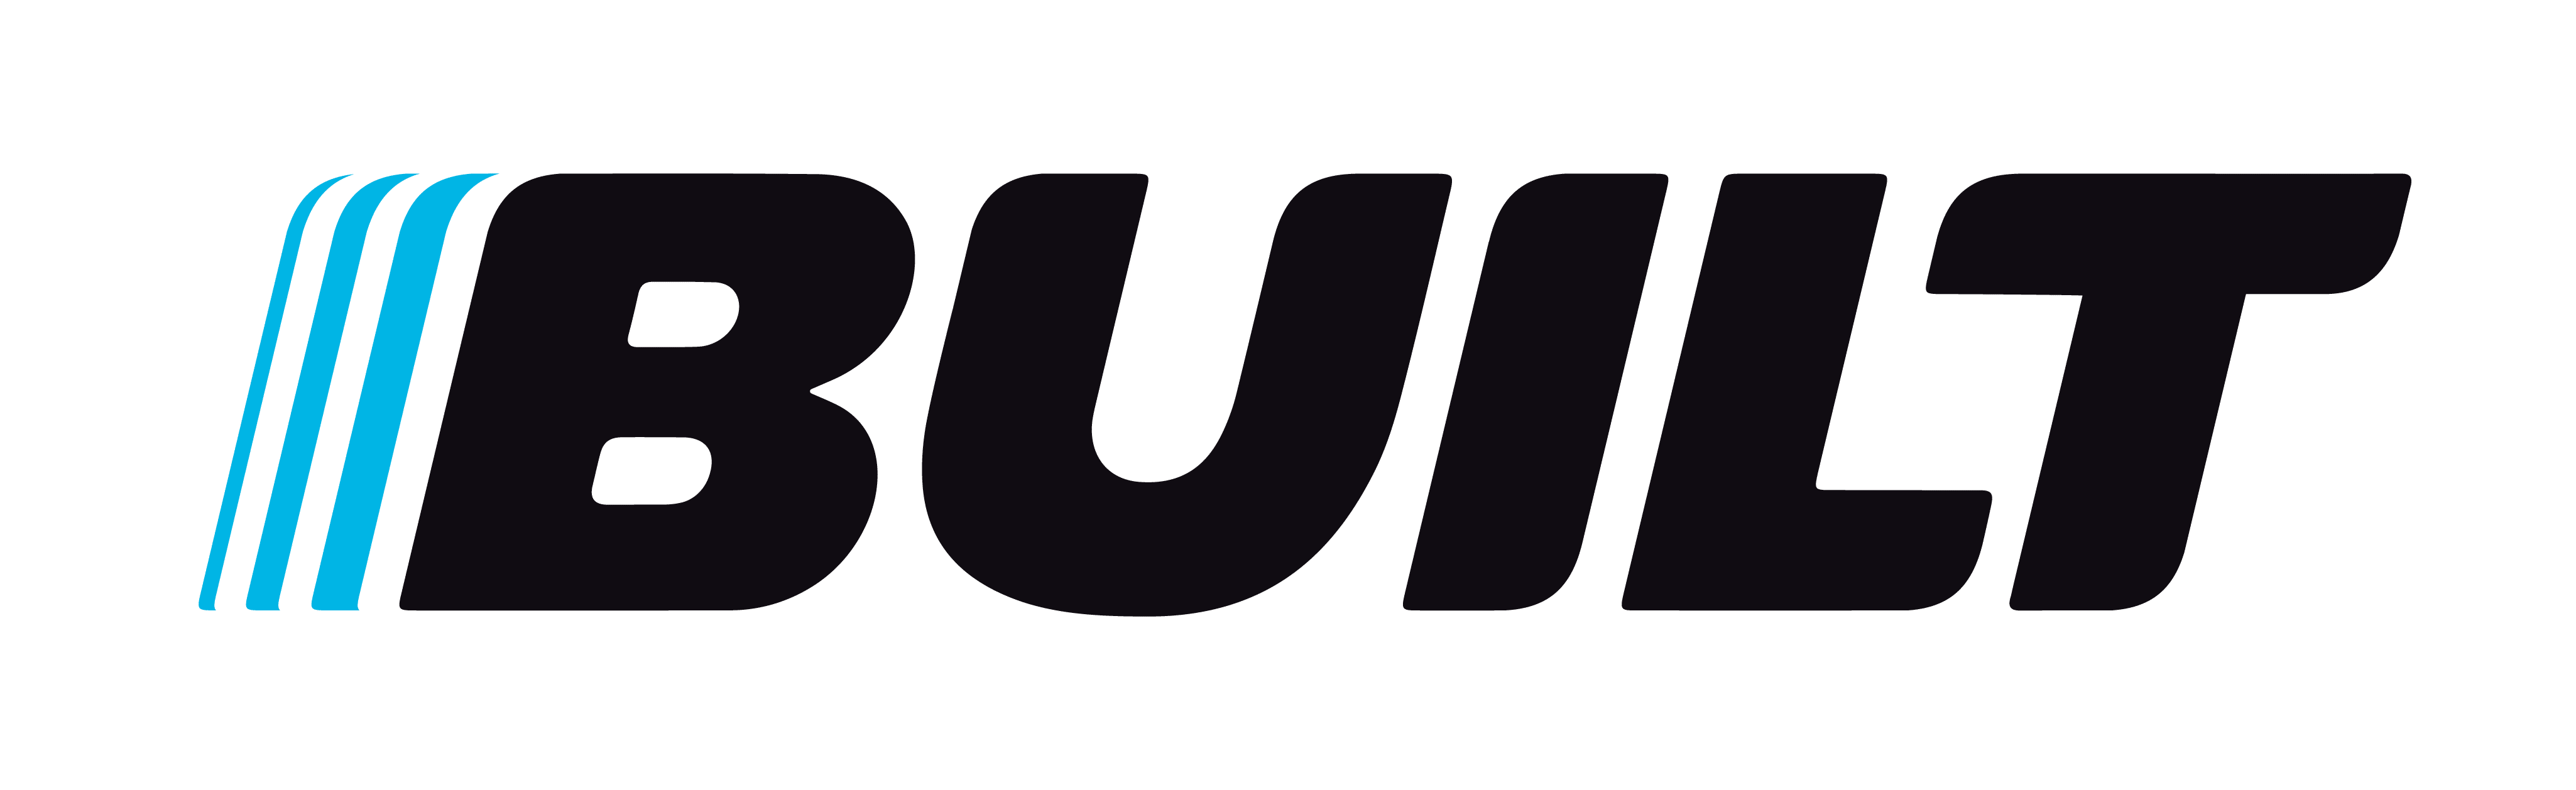 Built Brands Announces Major Relaunch With Return of Original Built Bar, New Product Offerings, New Facility